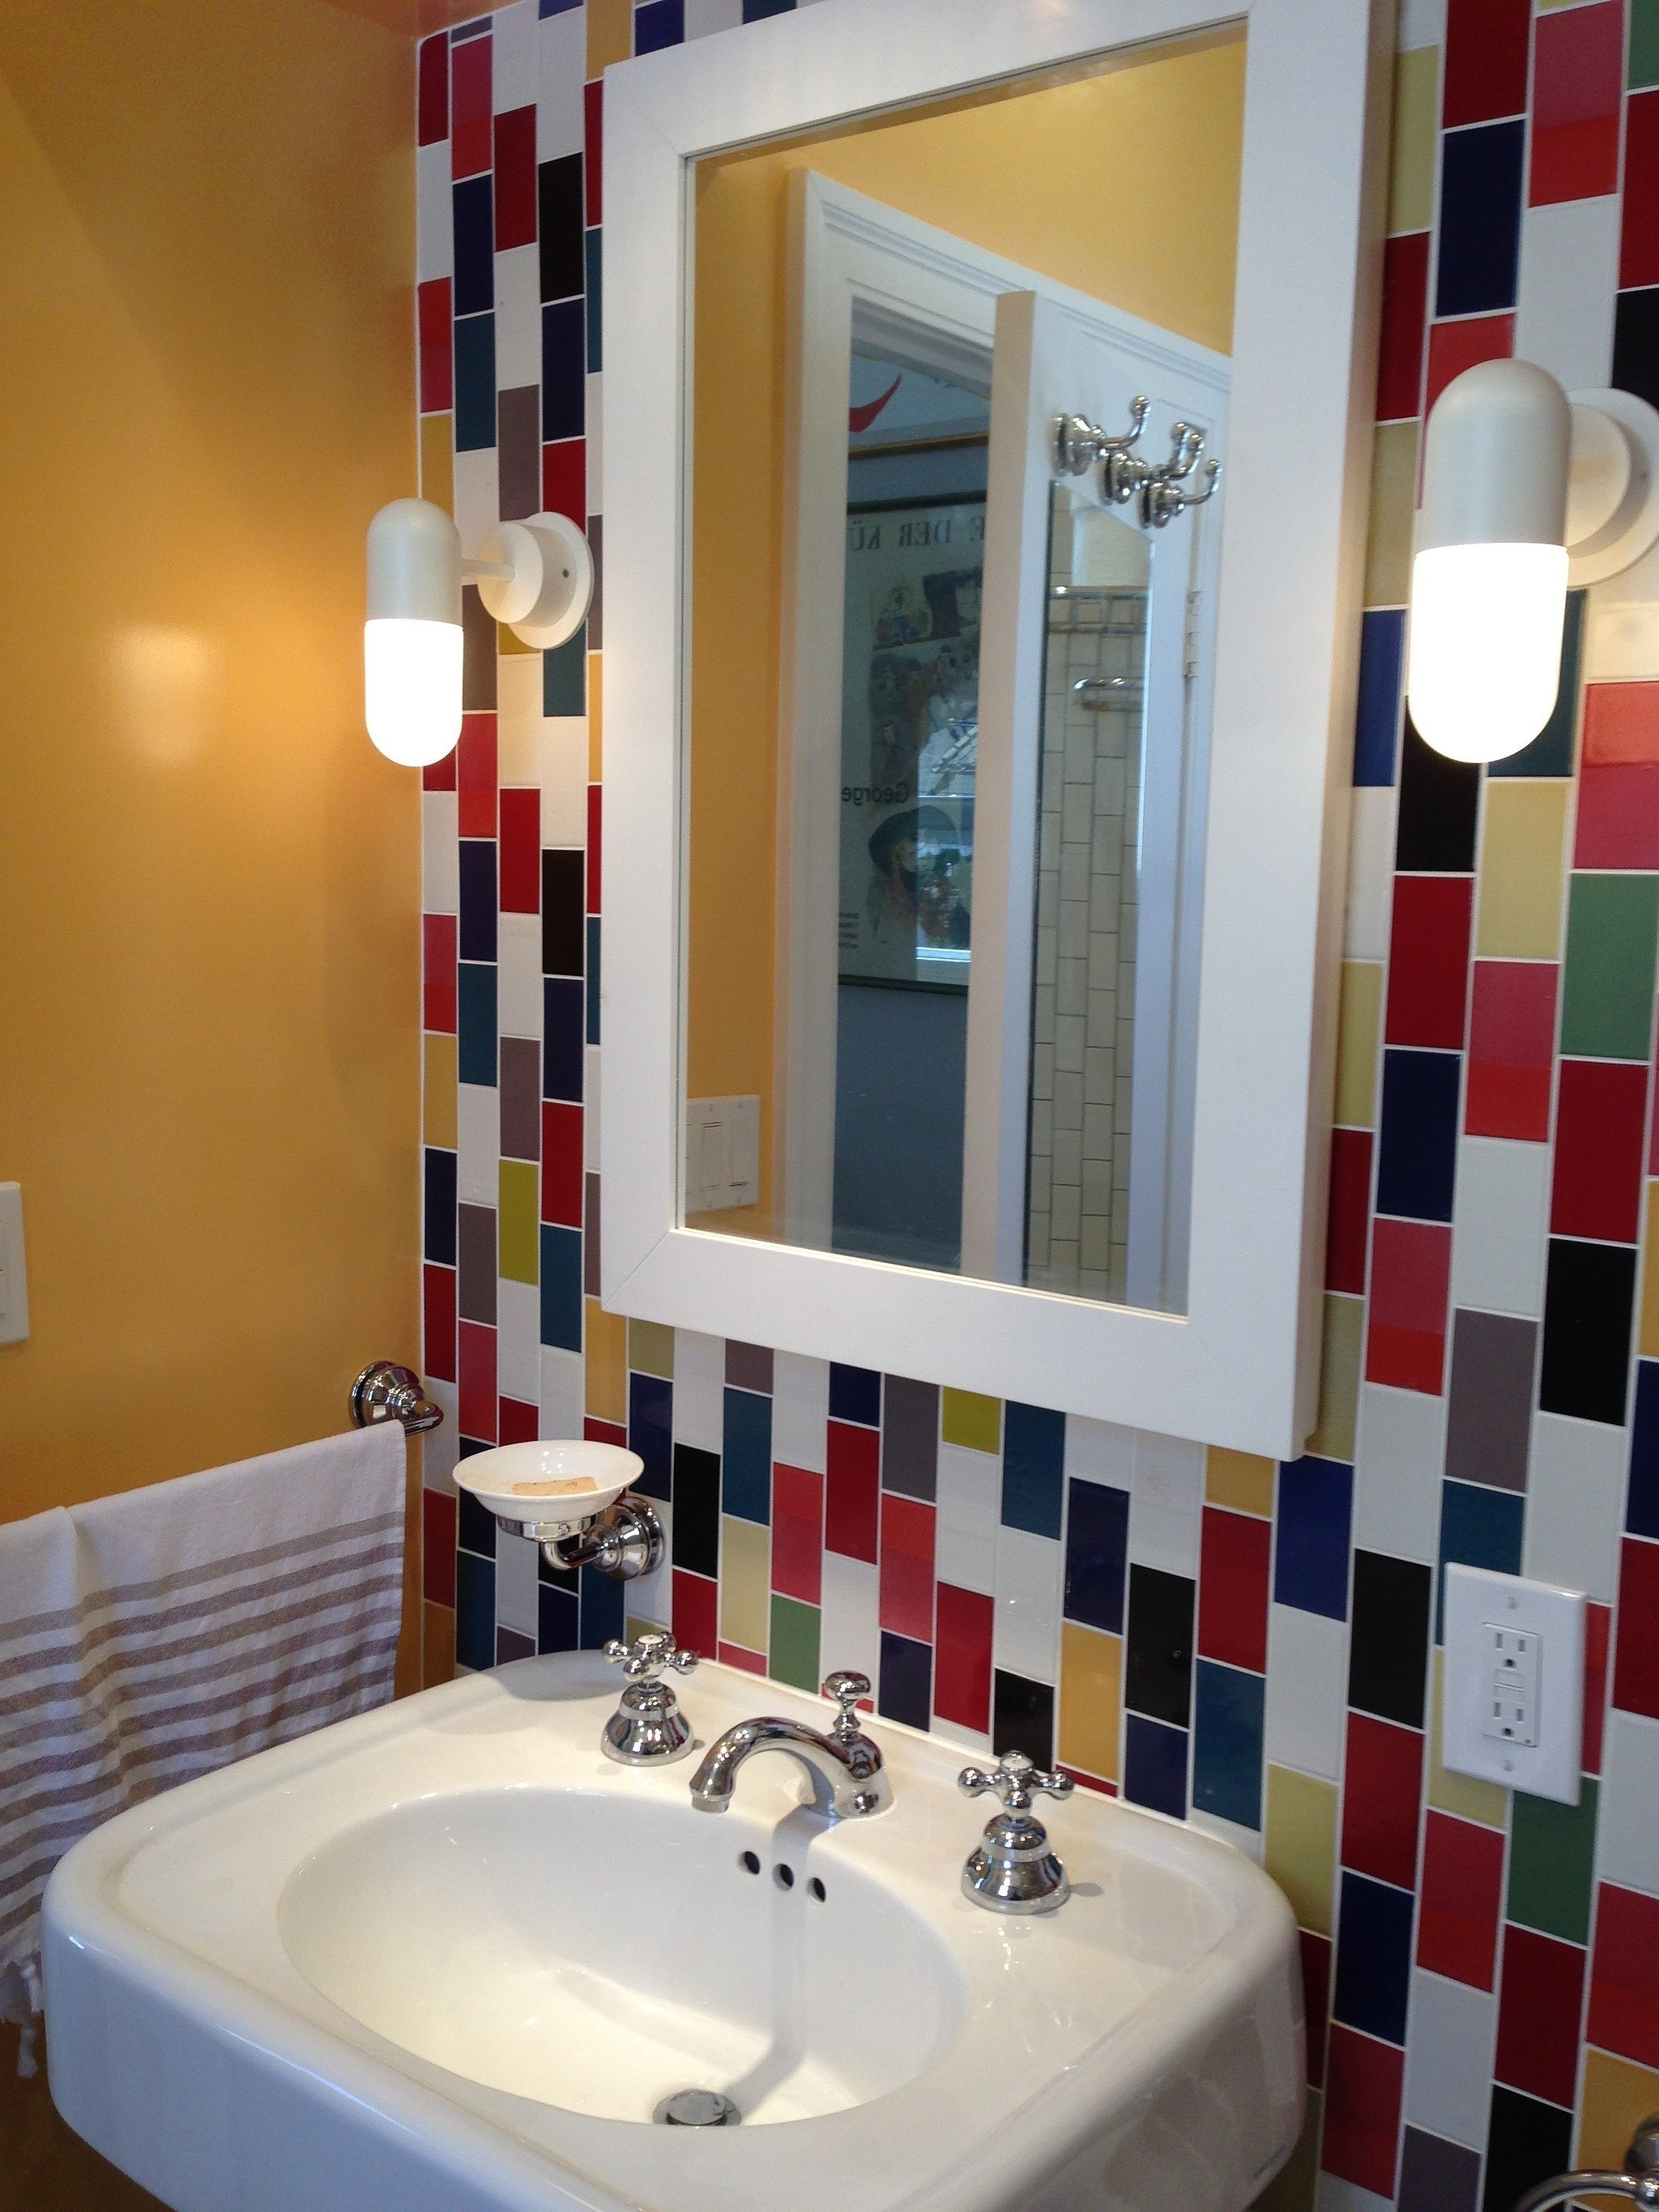 10 Most Popular Bathroom Wall Ideas On A Budget creative home decorating ideas on a budget design office for your 2021